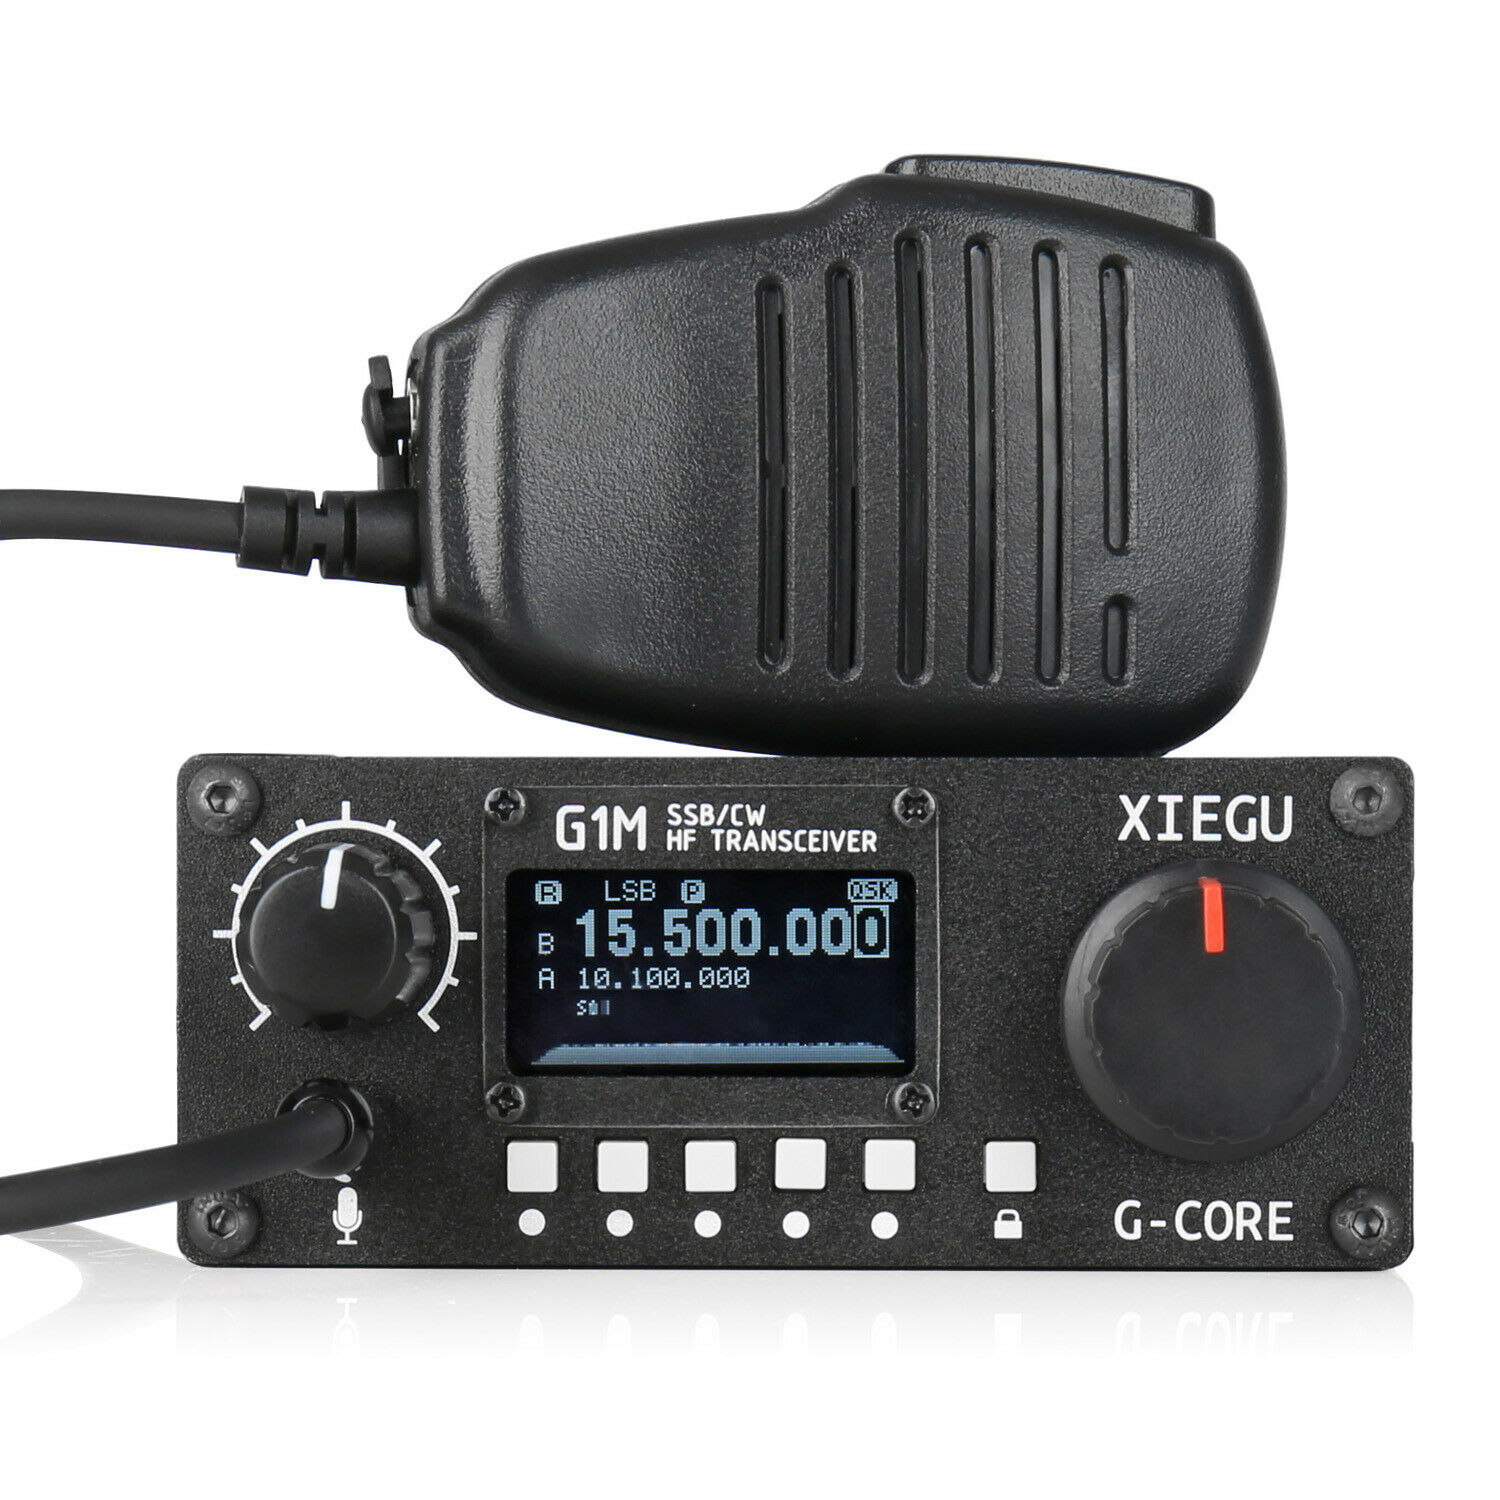 Details about XIEGU G1M Quad Band HF Transceiver QRP ShortWave 5W SSB CW  (0 5-30) Mobile Radio